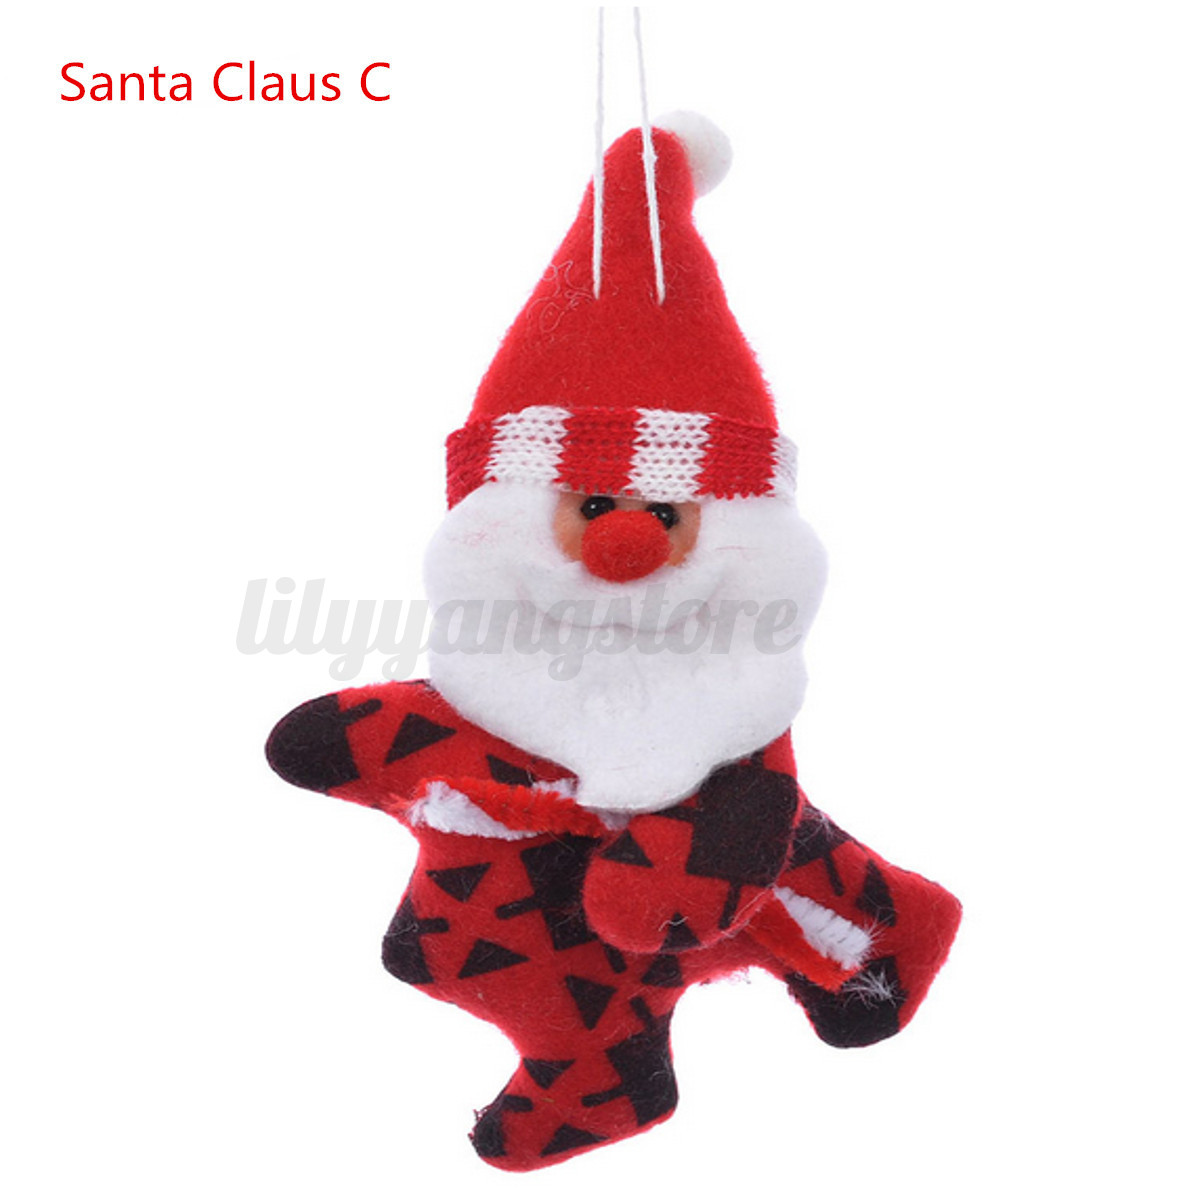 click decor retro to snowman additional decoration christmas images figures decorationb with view santa decorations